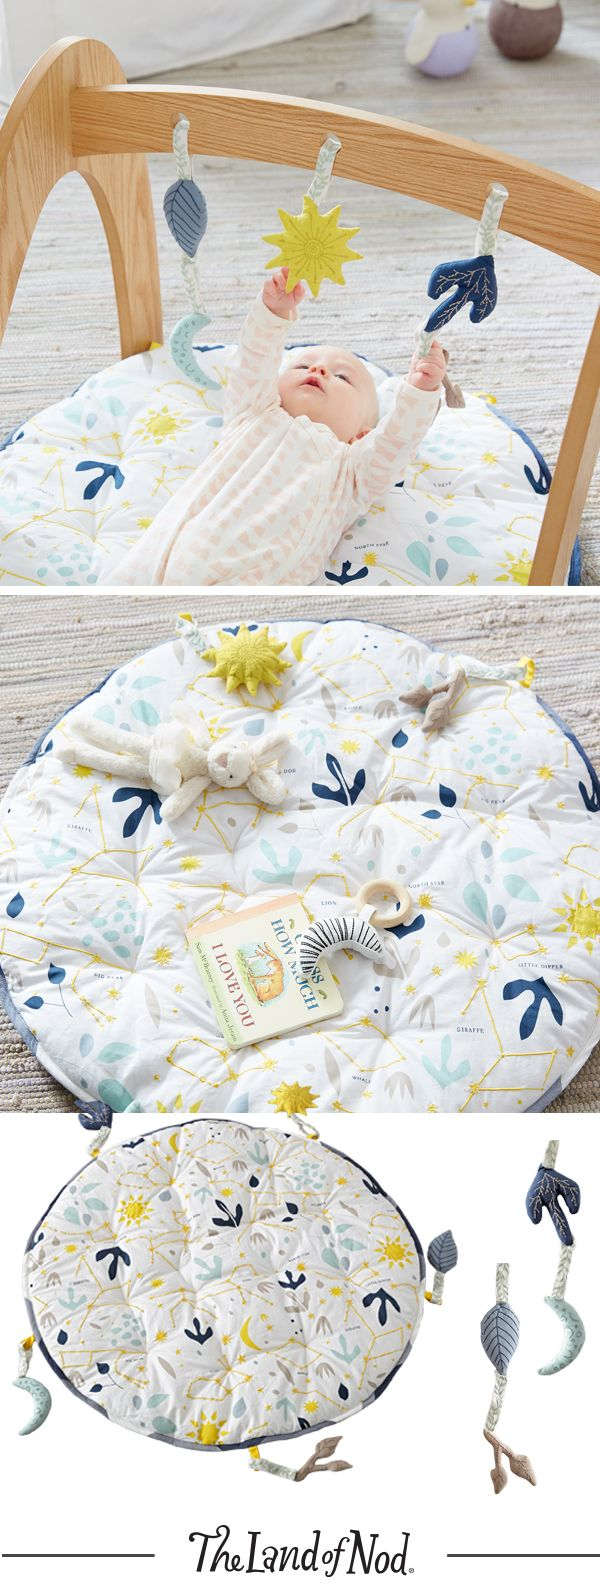 Get ready for the ultimate tummy time with our Genevieve Gorder for Nod baby play mat and rattles.